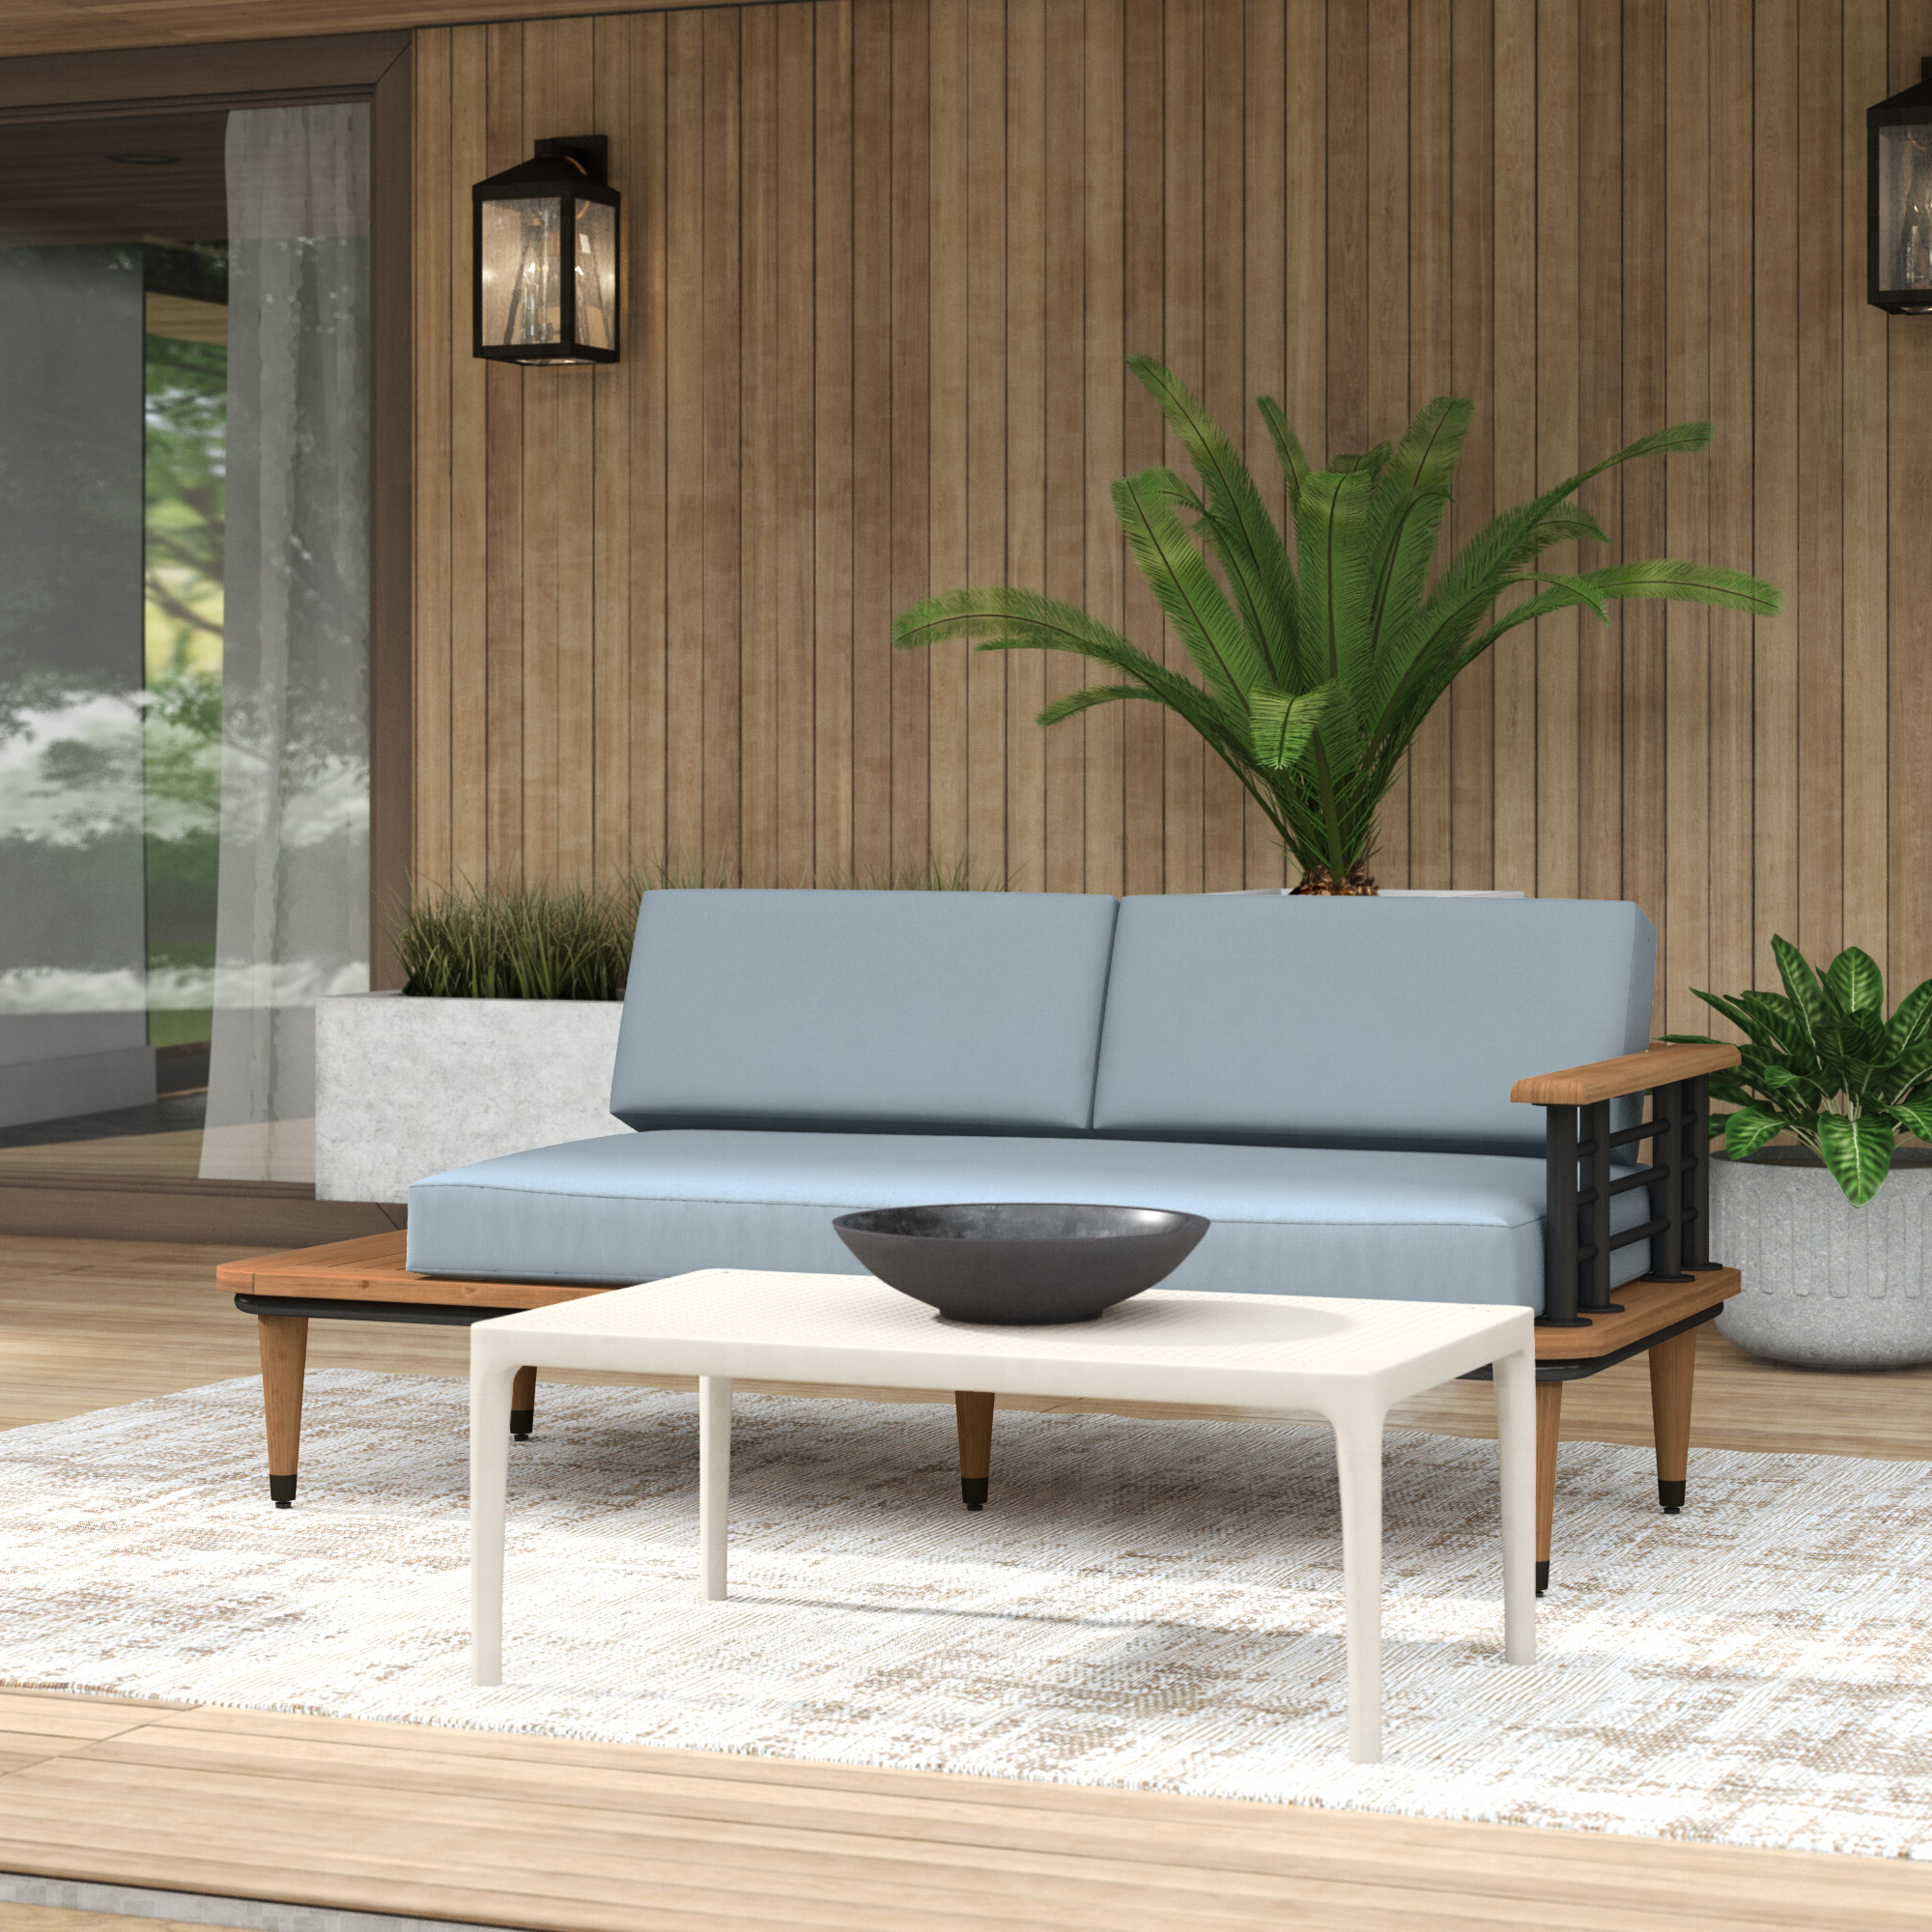 Well Known Mercury Row Clary Teak Lounge Patio Daybed With Cushion With Regard To Clary Teak Lounge Patio Daybeds With Cushion (Gallery 1 of 20)